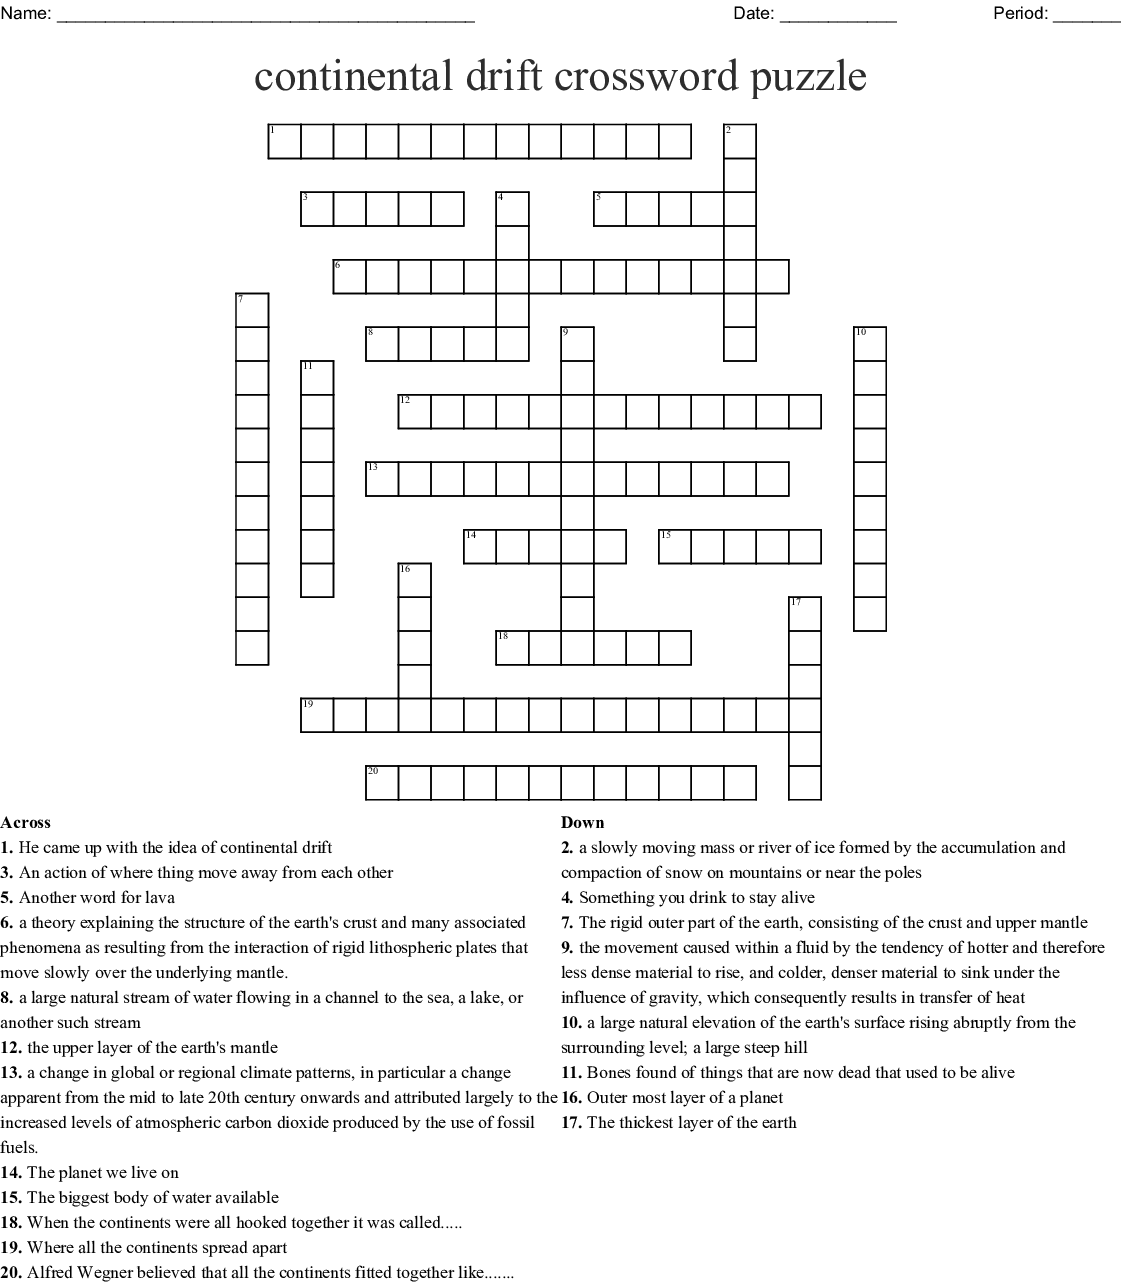 Continental Drift Crossword Puzzle